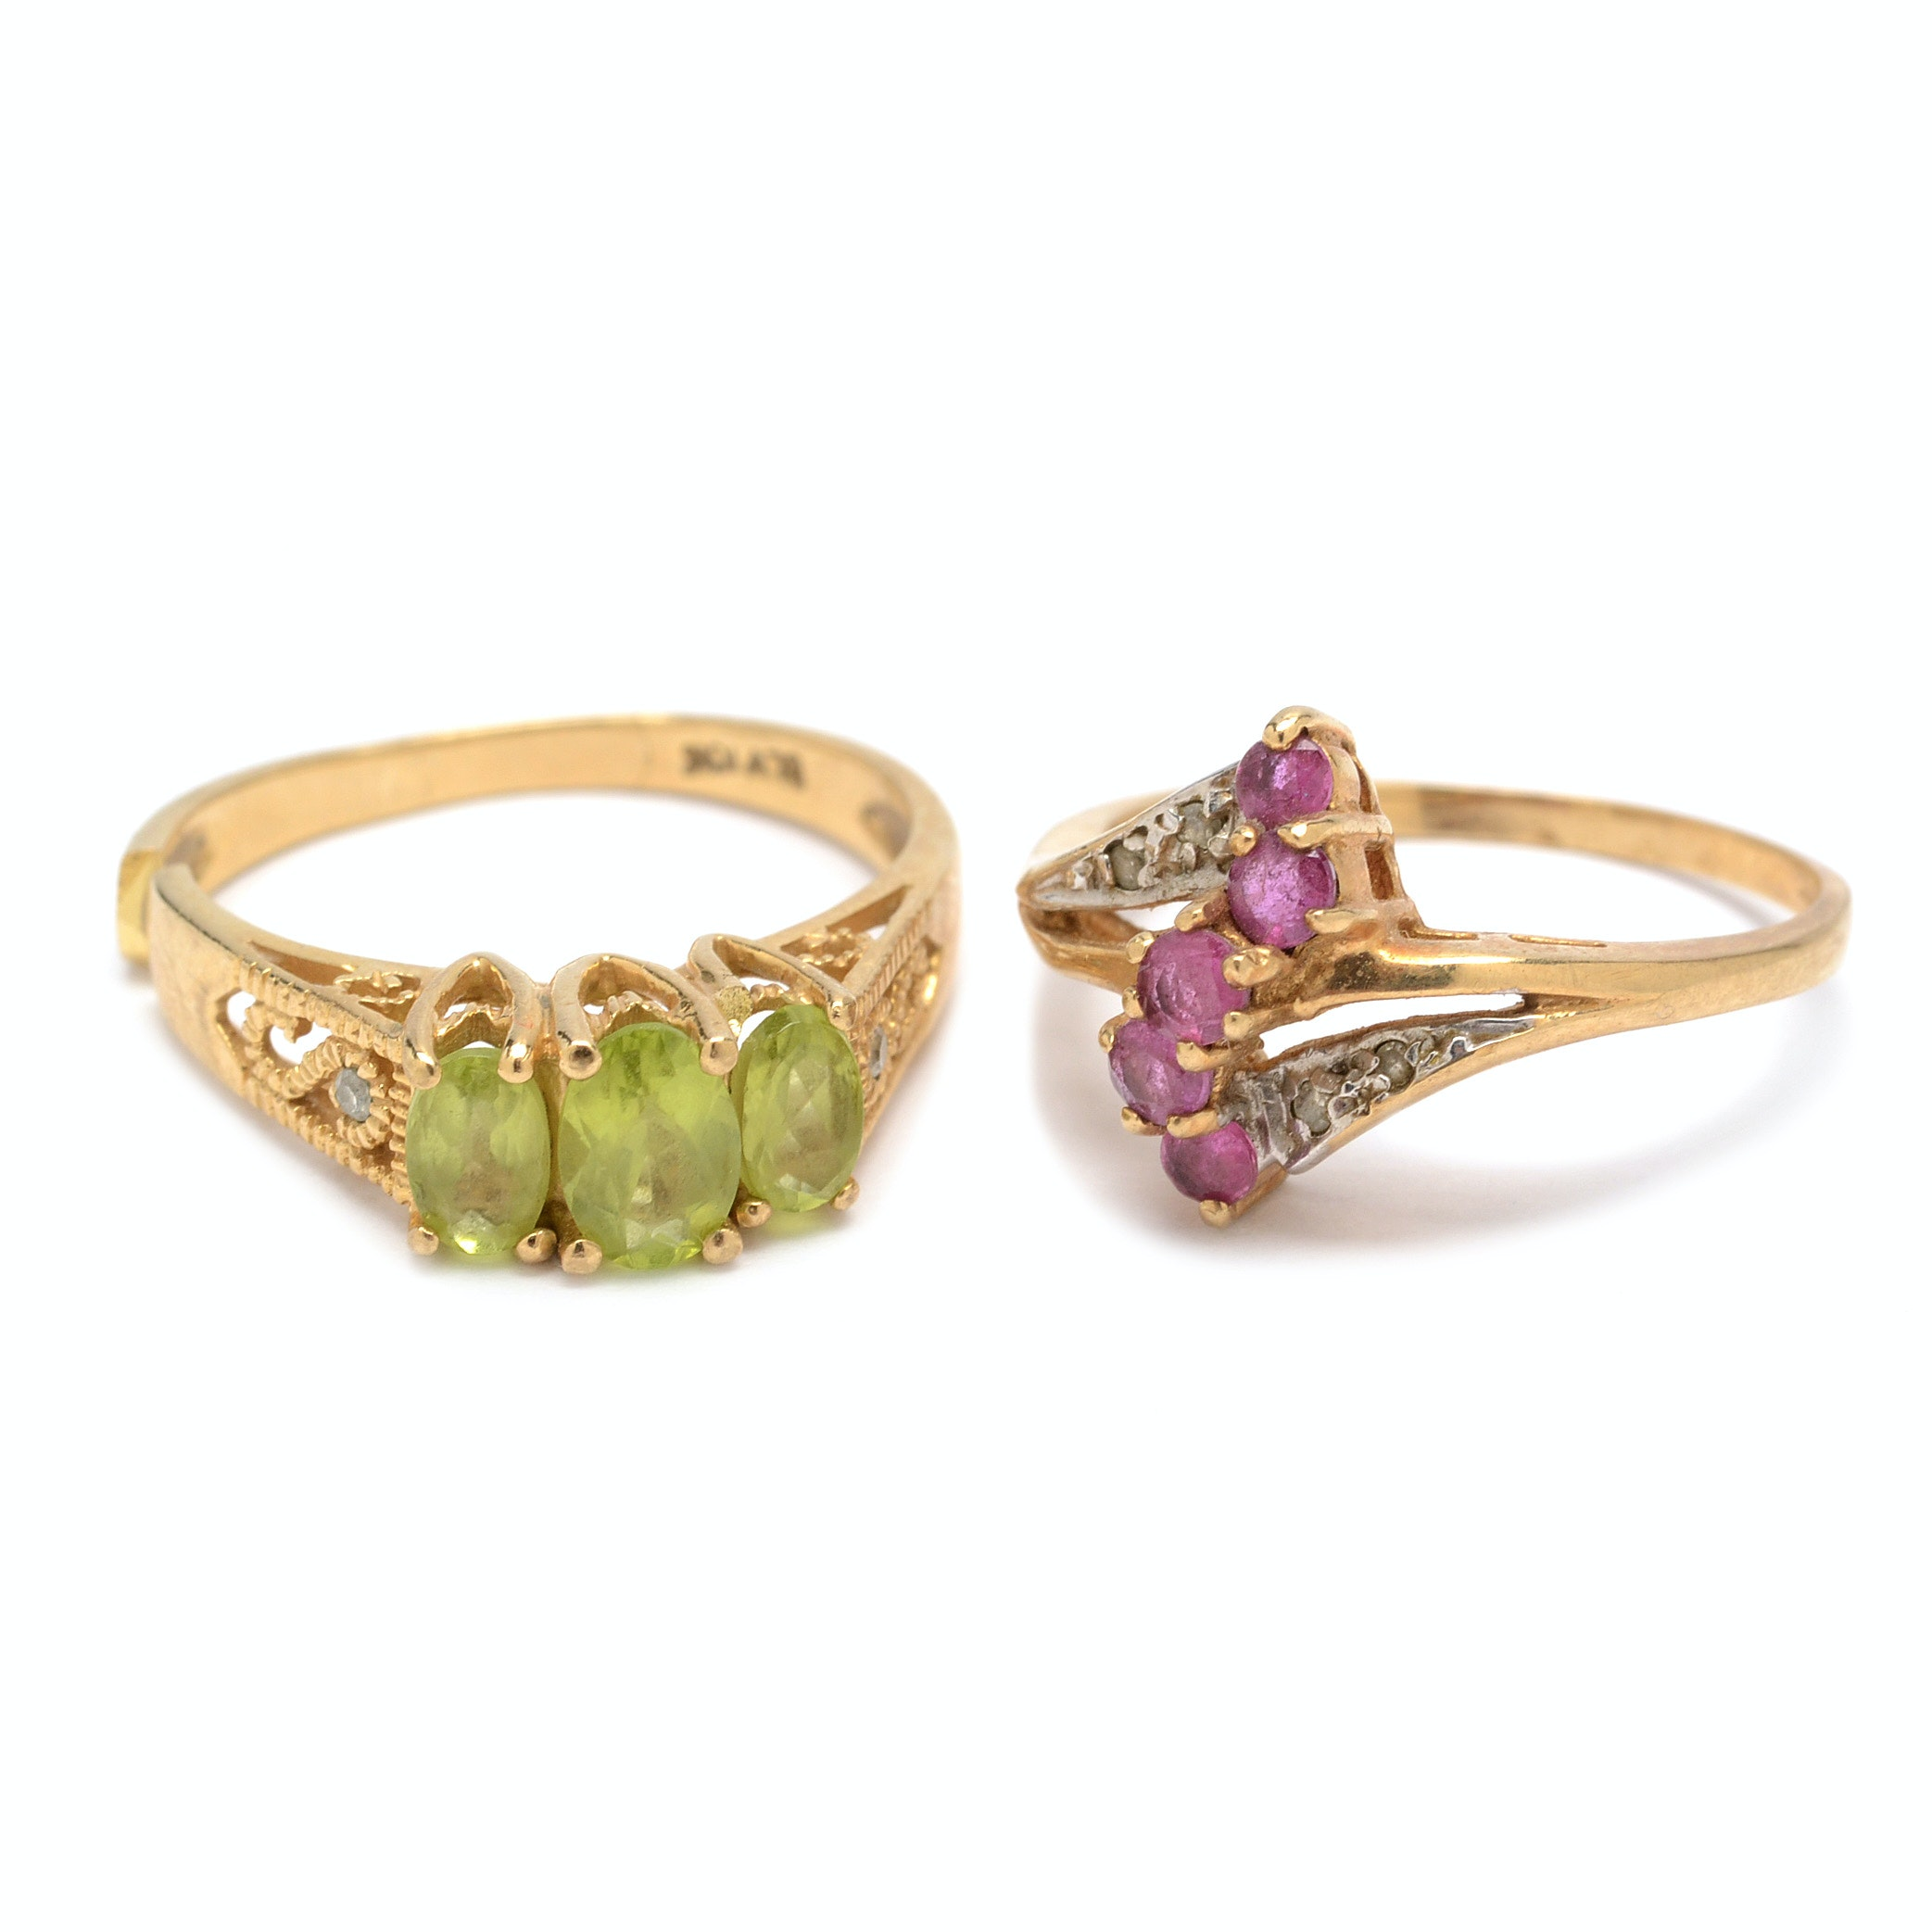 10K Yellow Gold Rings With Gemstones and Diamond Accents